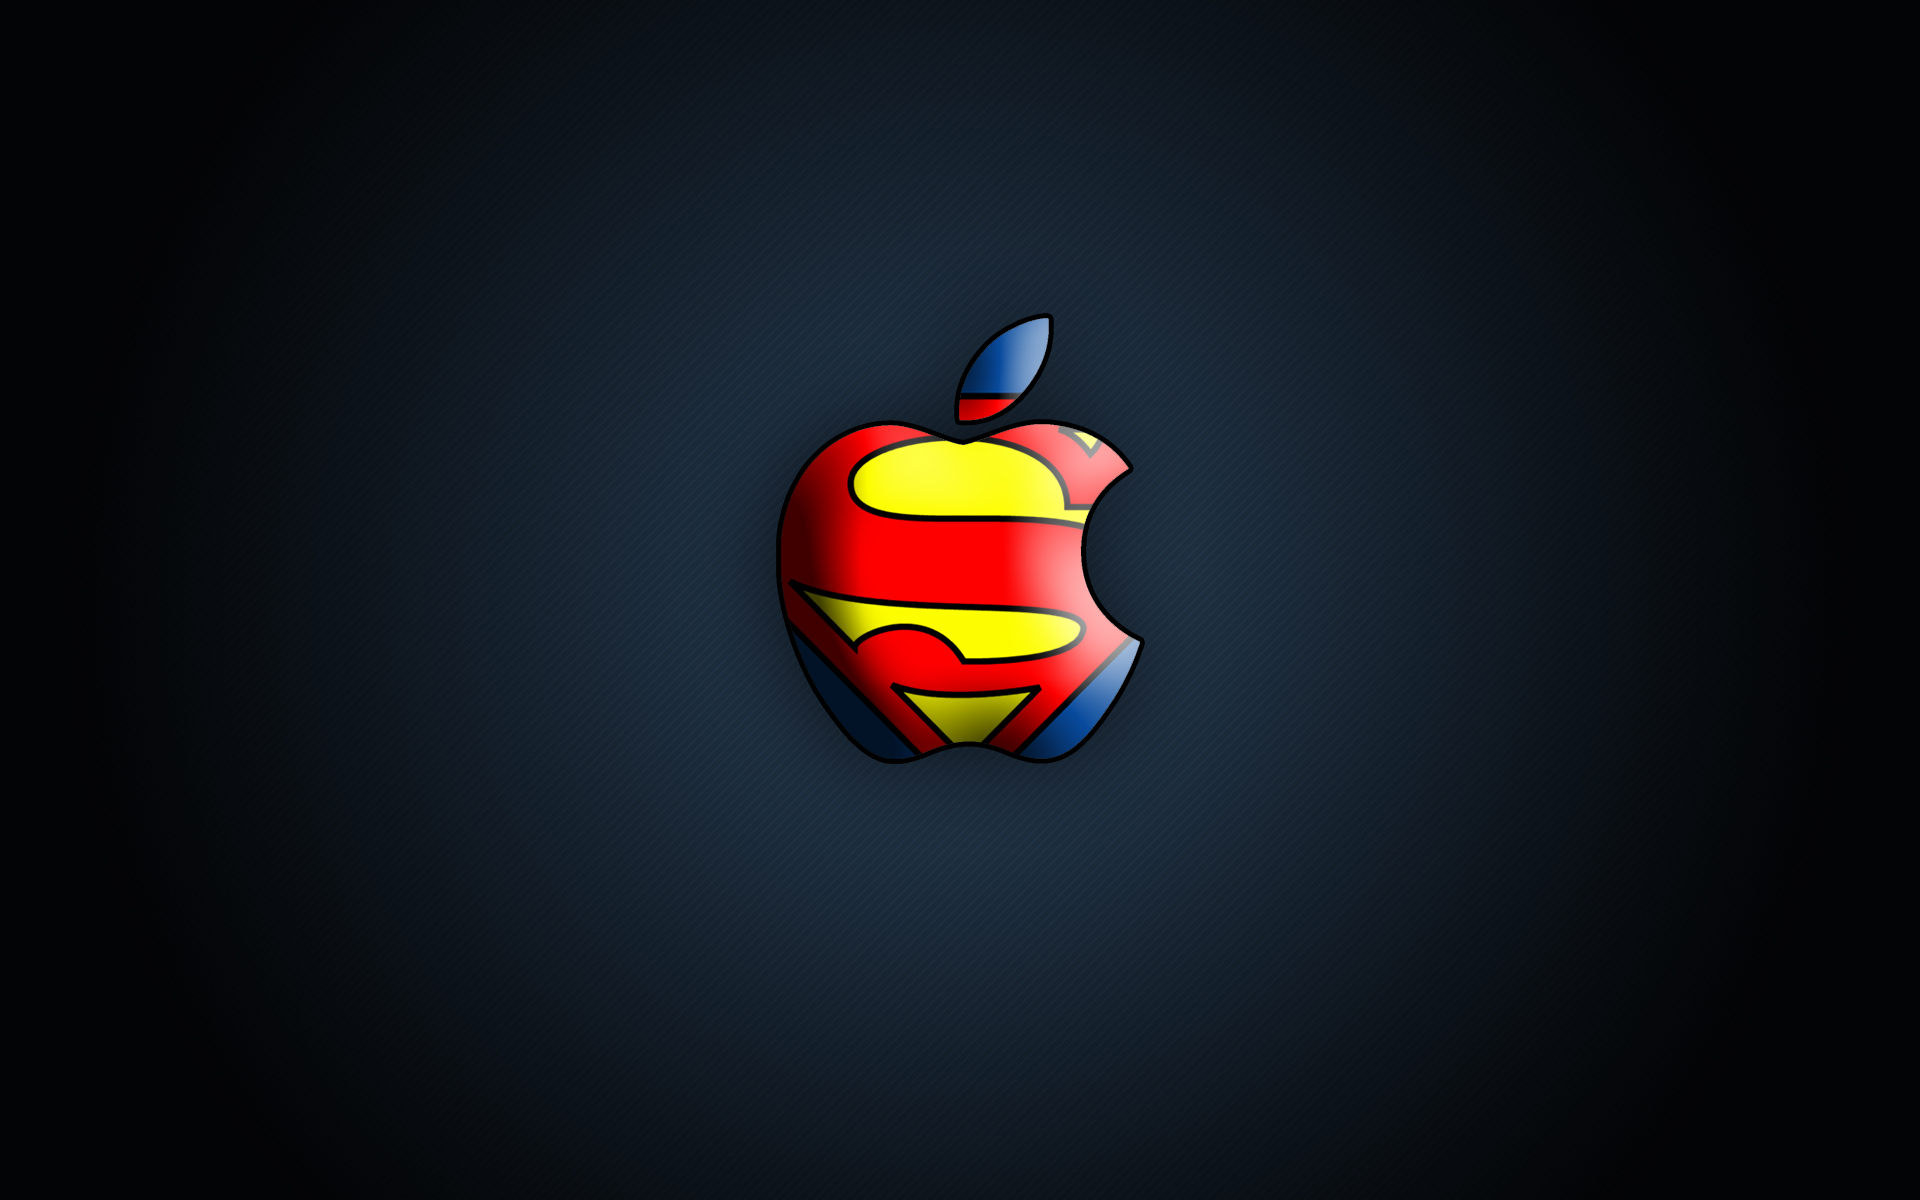 so i was trying to dress up my mac with a cool superman mac wallpaper 1920x1200